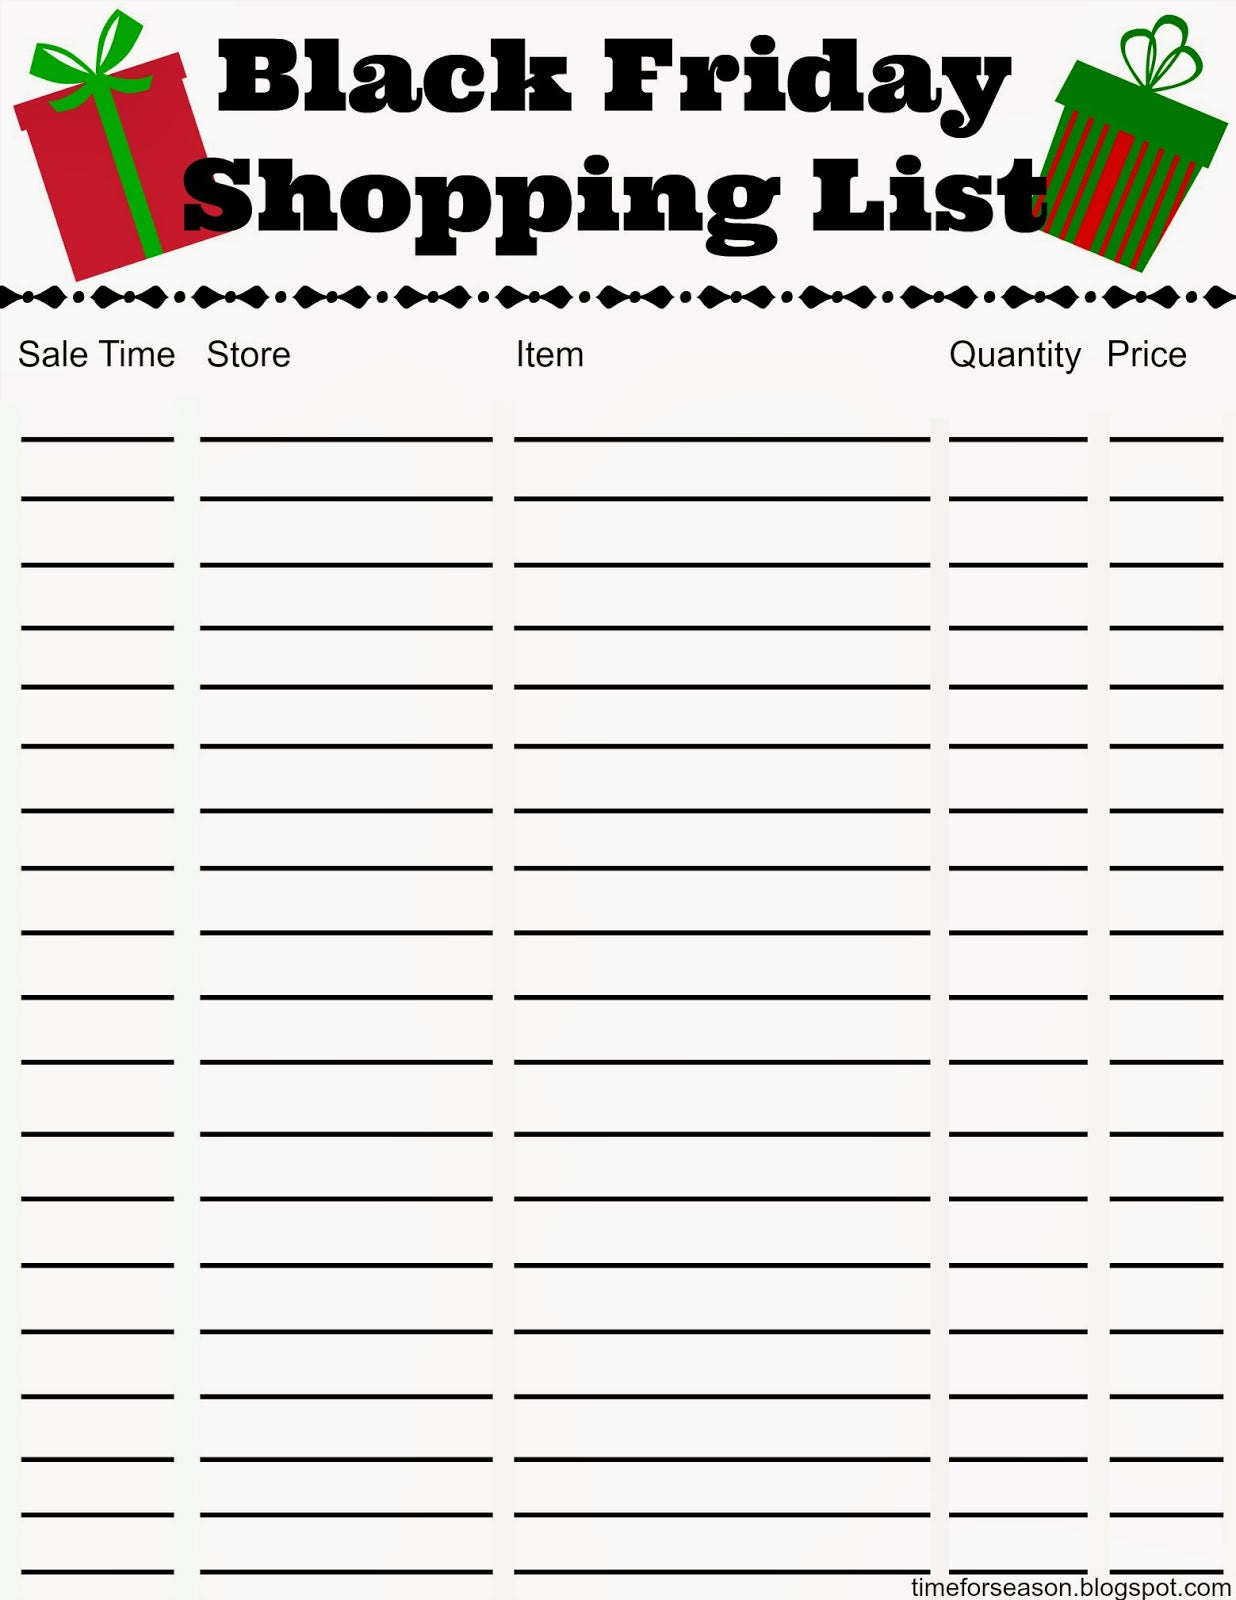 Black Friday Shopping List